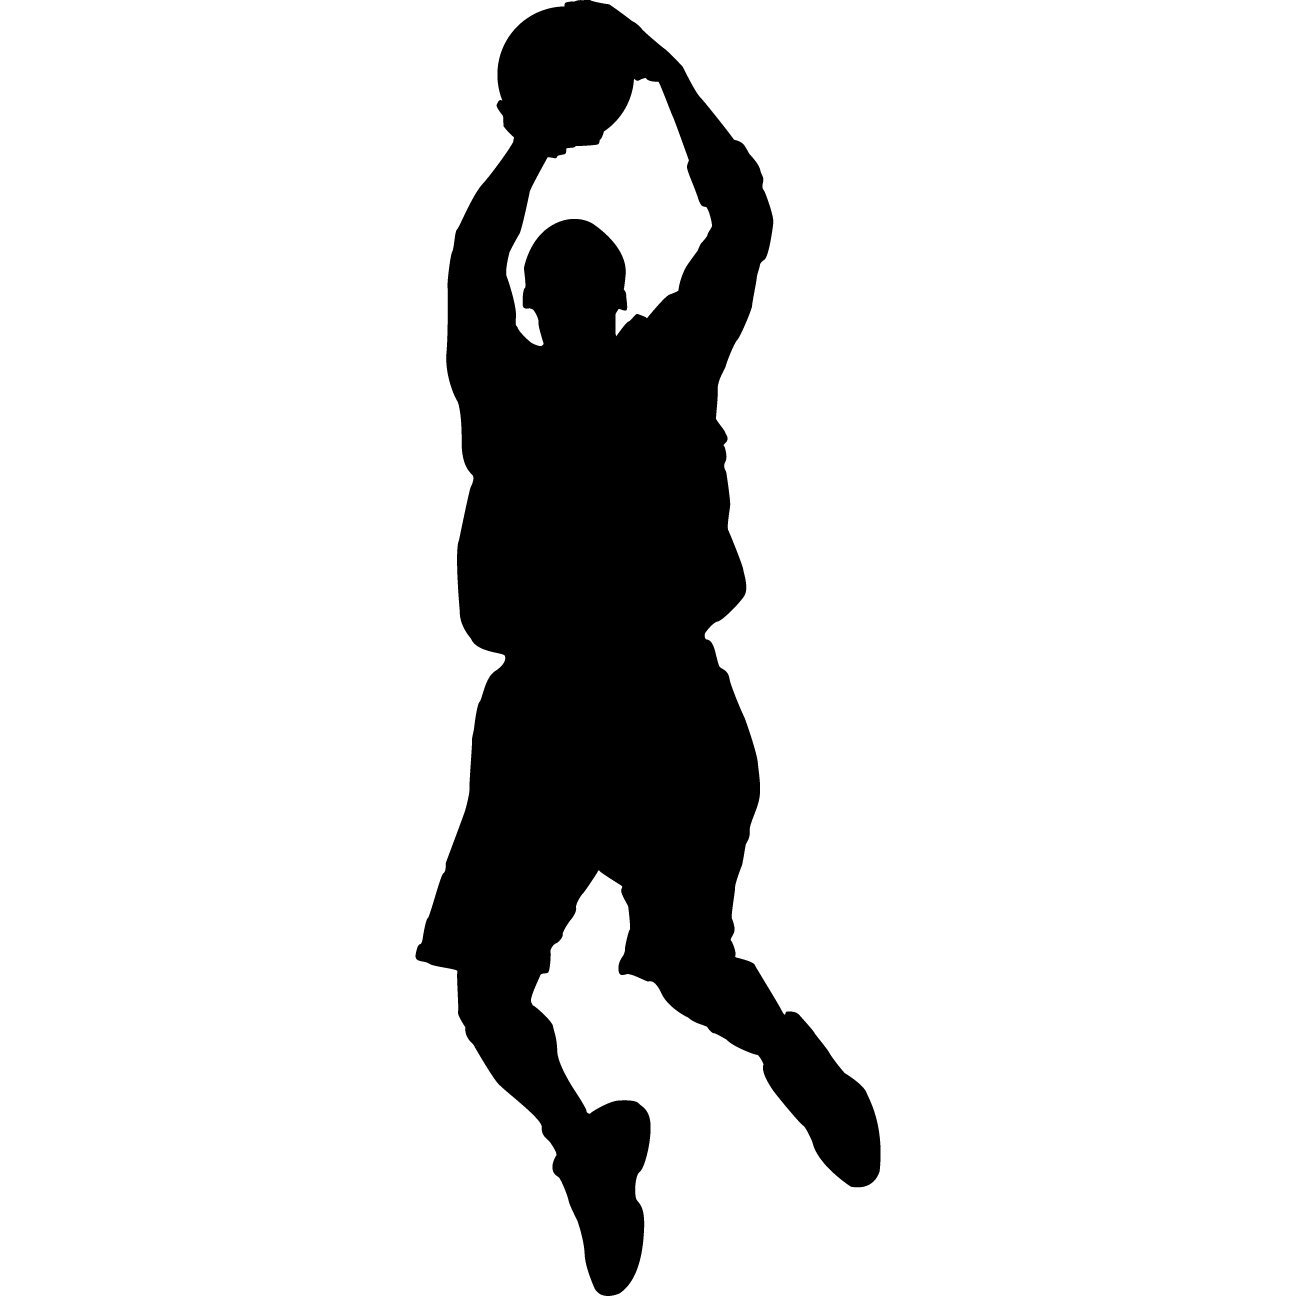 12 Basketball Silhouette Vector Images